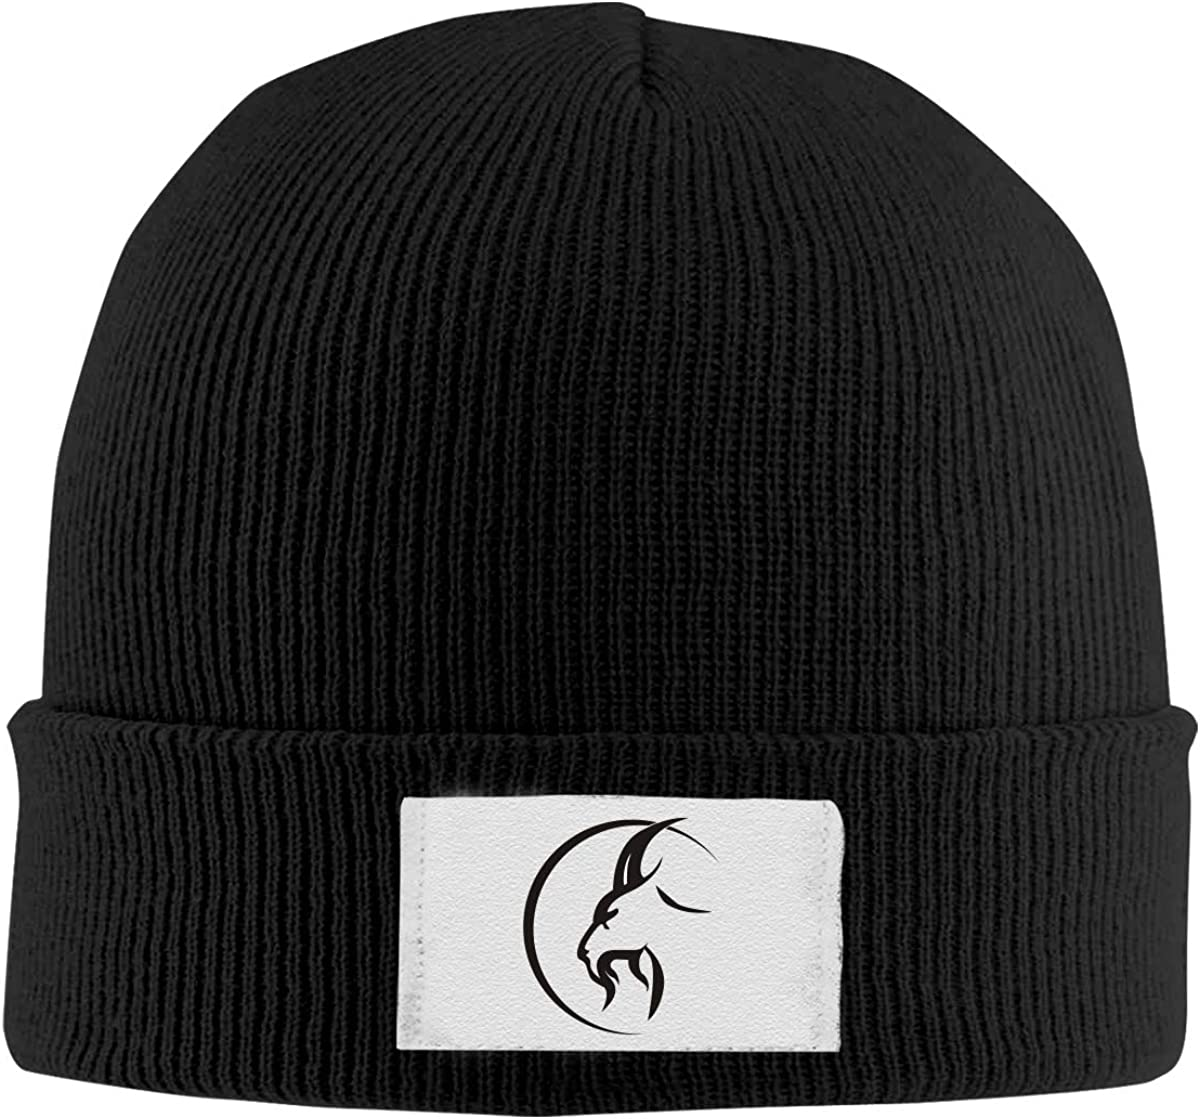 Dunpaiaa Skull Caps Goat Logo Winter Warm Knit Hats Stretchy Cuff Beanie Hat Black